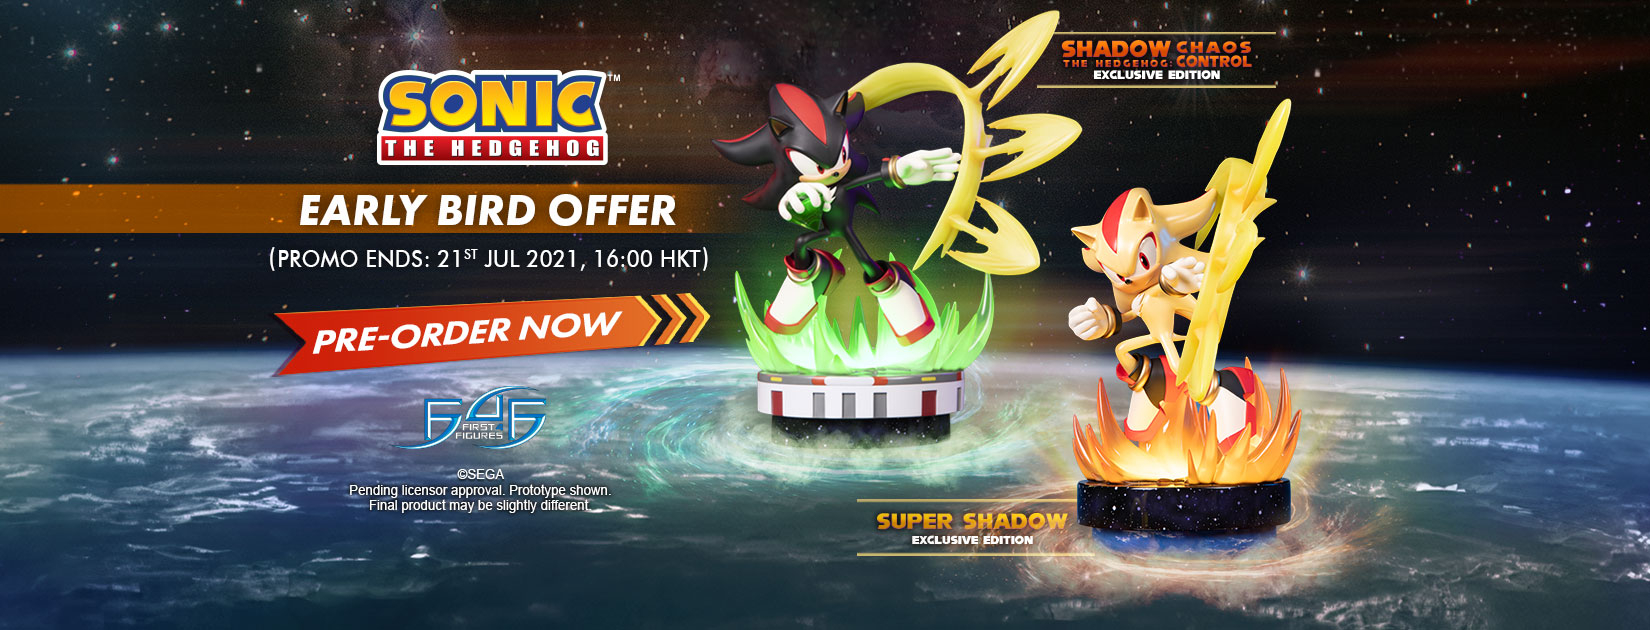 Sonic The Hedgehog – Super Shadow statue Early Bird Offer